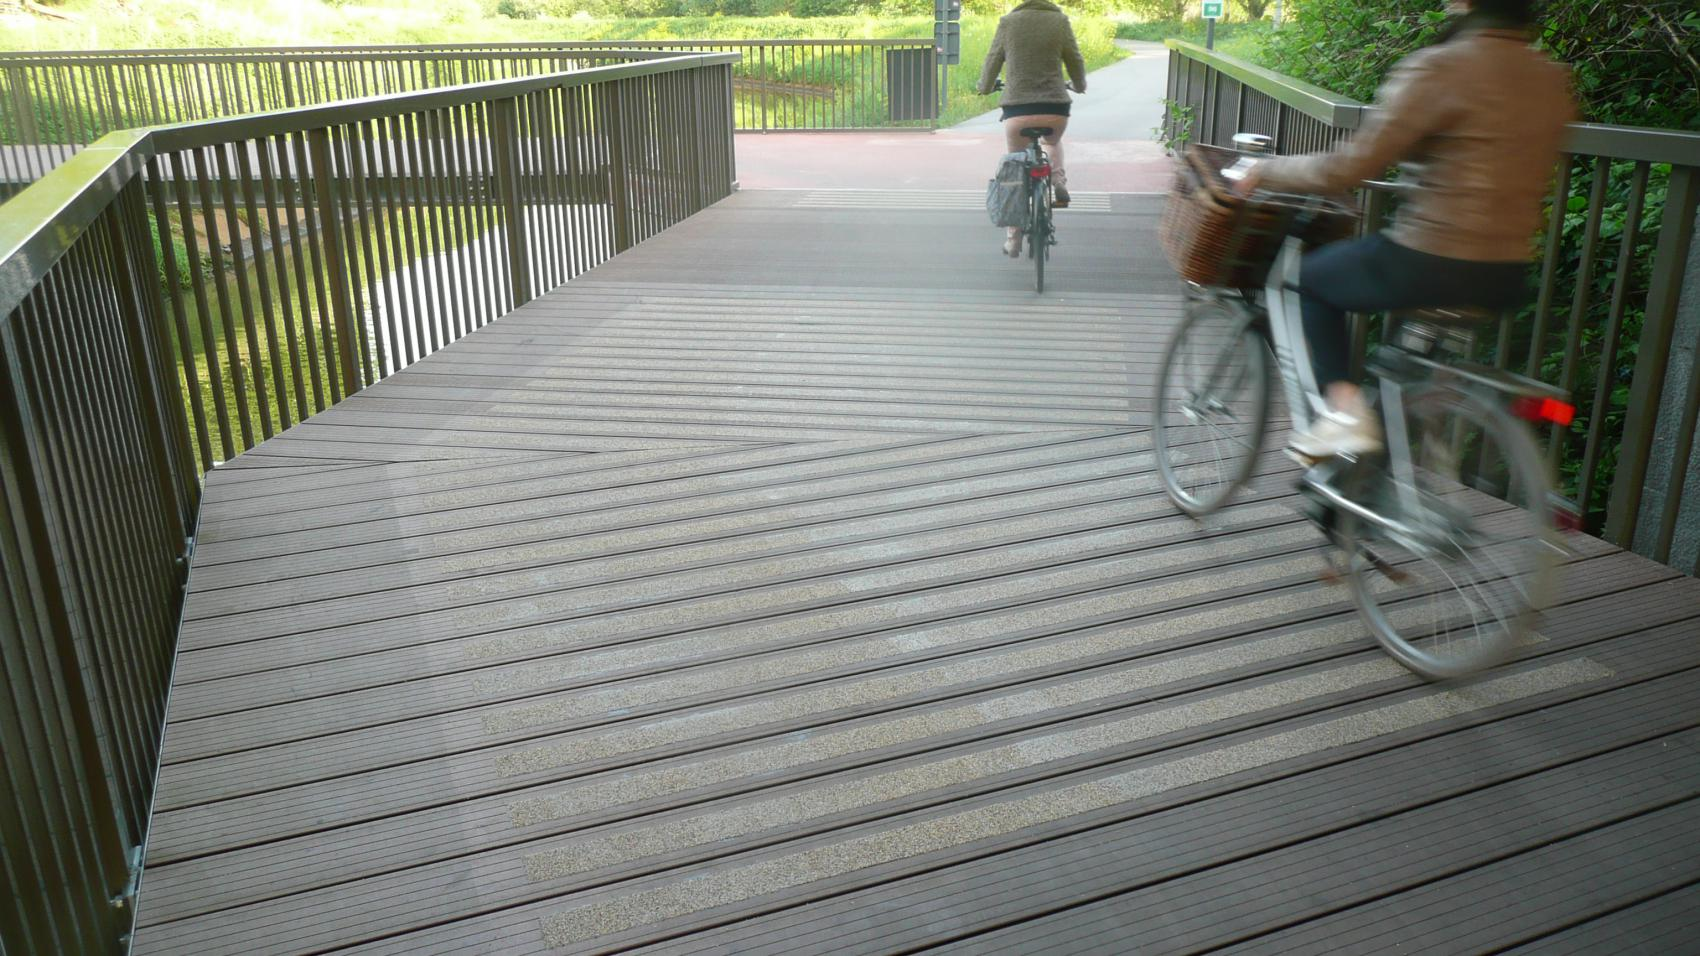 Good friction is particularly important on curves. Photo credit: Provincie Antwerpen.